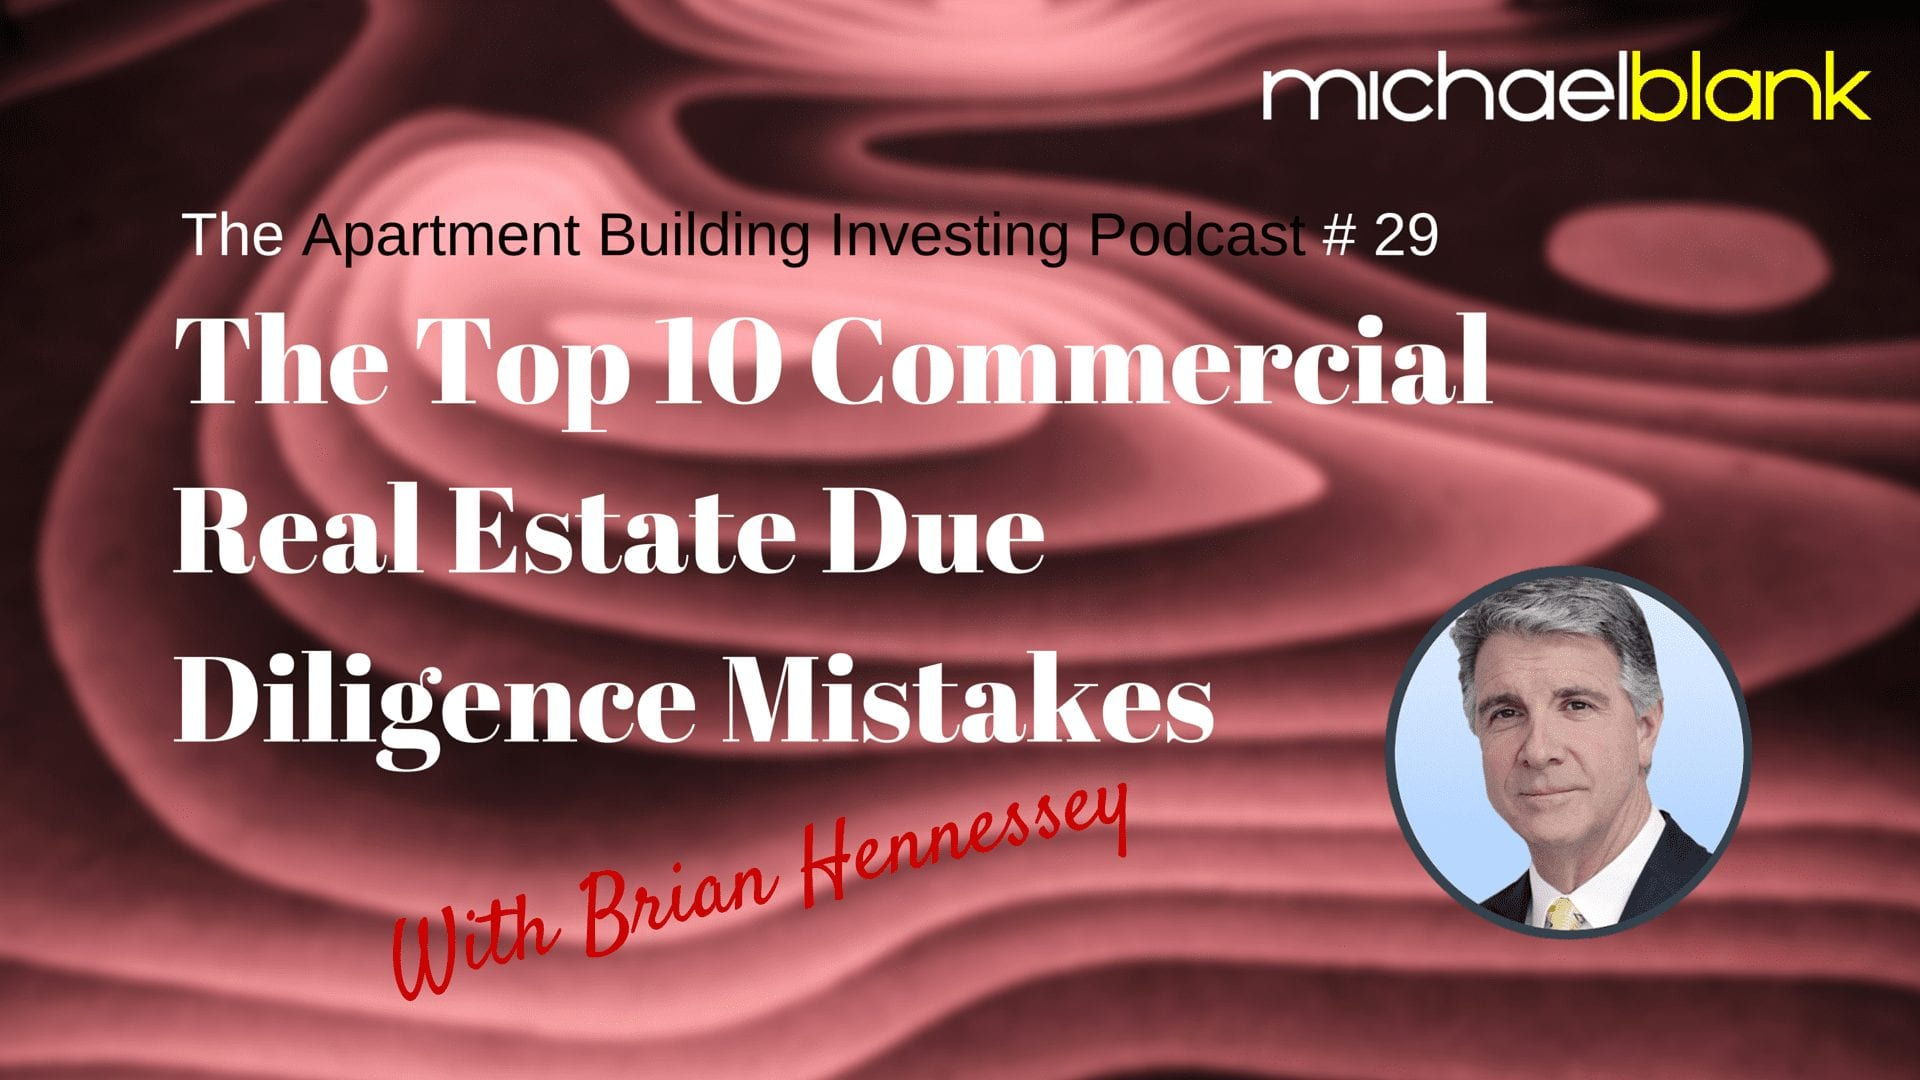 MB 031: The Top 10 Commercial Real Estate Due Diligence Mistakes